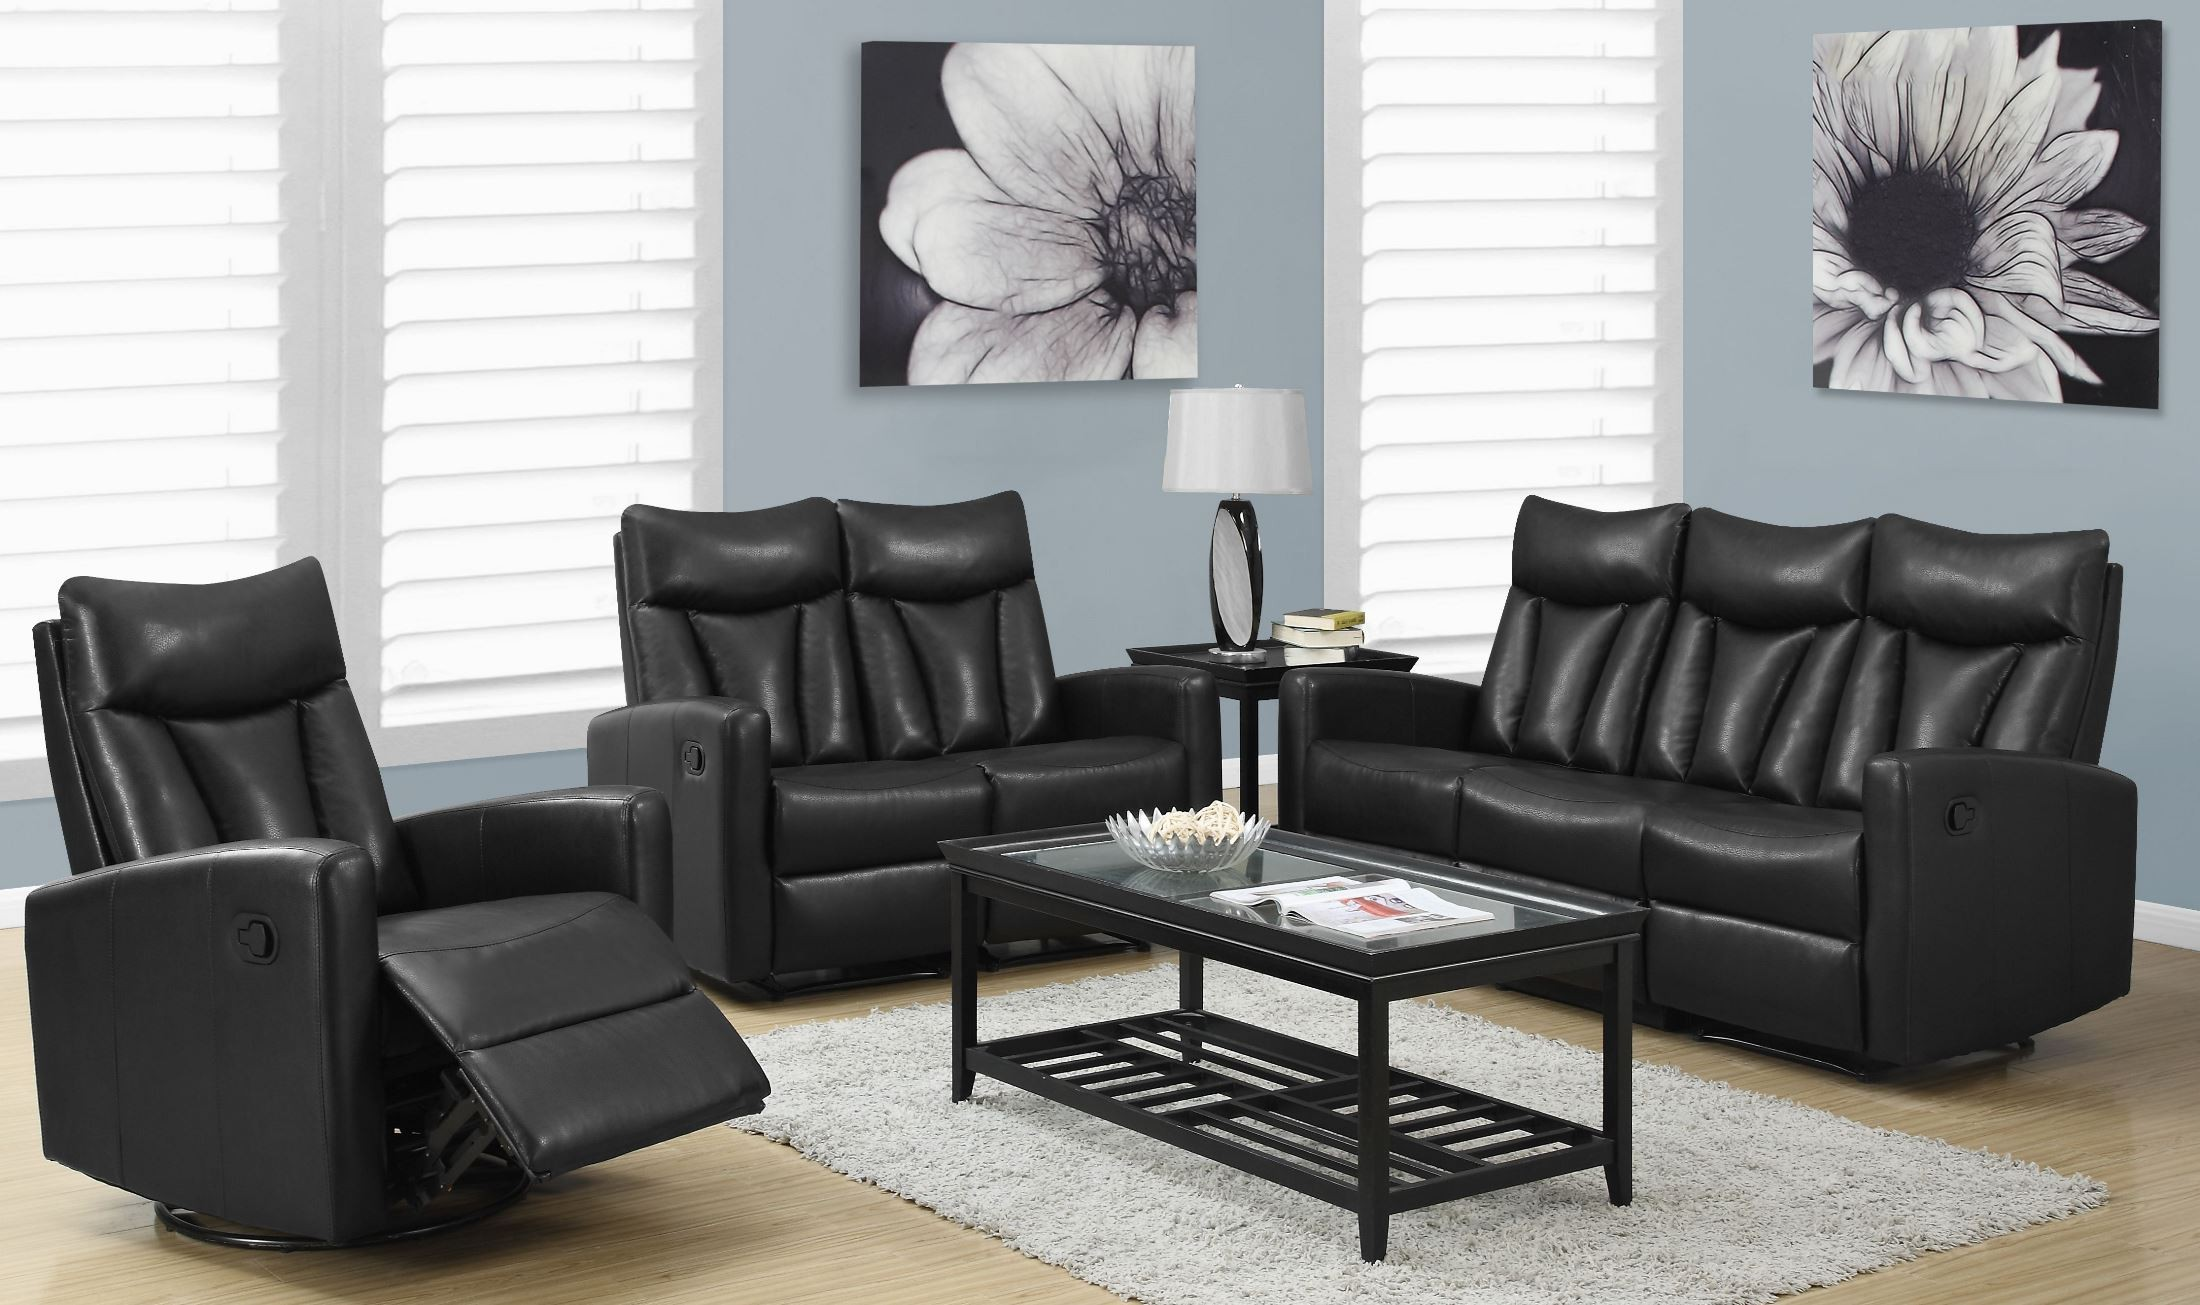 87bk 3 black bonded leather reclining living room set from for Black living room furniture sets